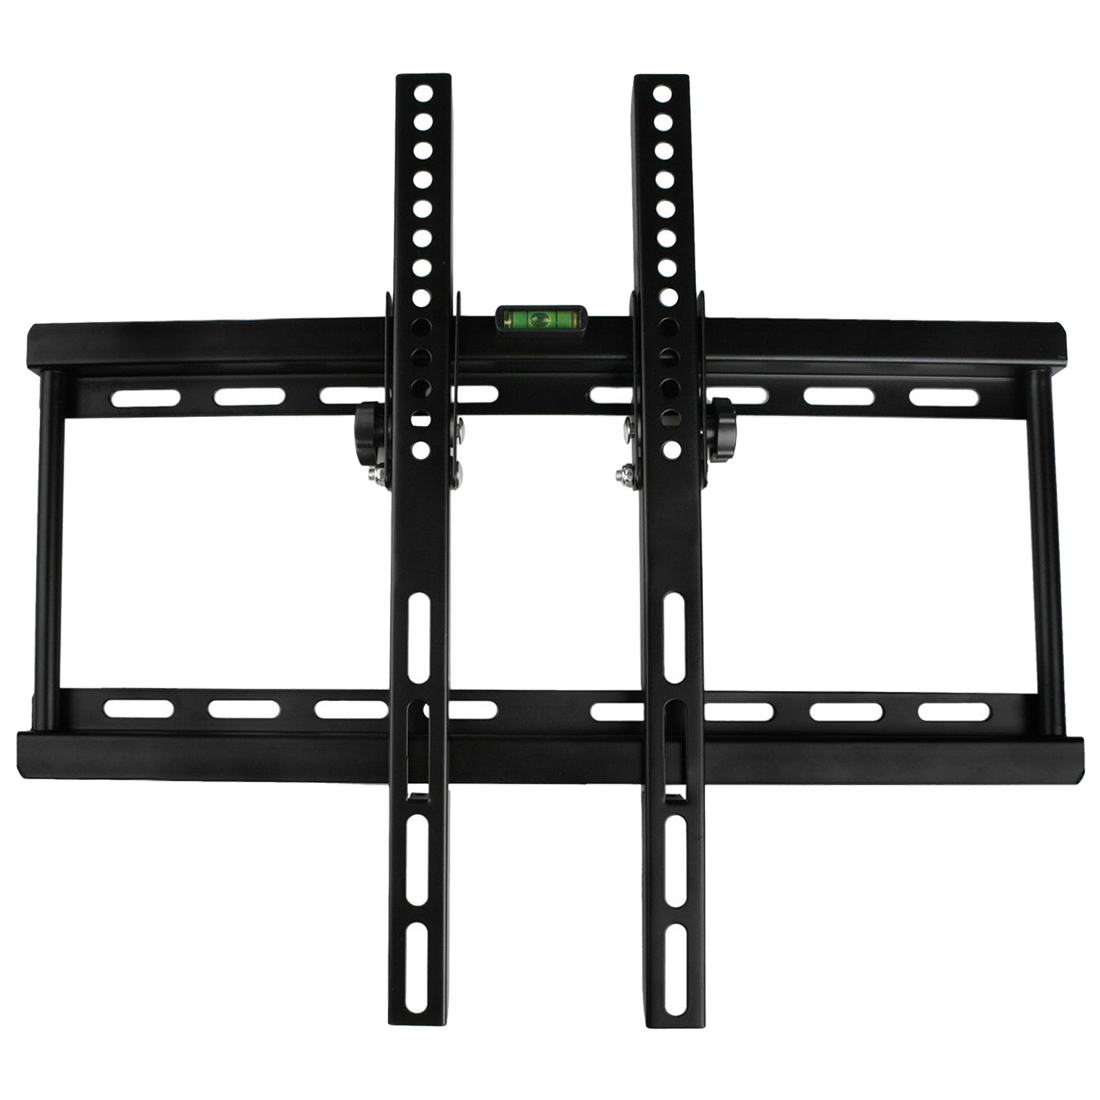 Cooperative Ksol Flat Slim Tv Wall Mount Bracket 23 28 30 32 40 42 48 50 55 Inch Led Lcd Plasma Beneficial To Essential Medulla Bathroom Fixtures Home Improvement